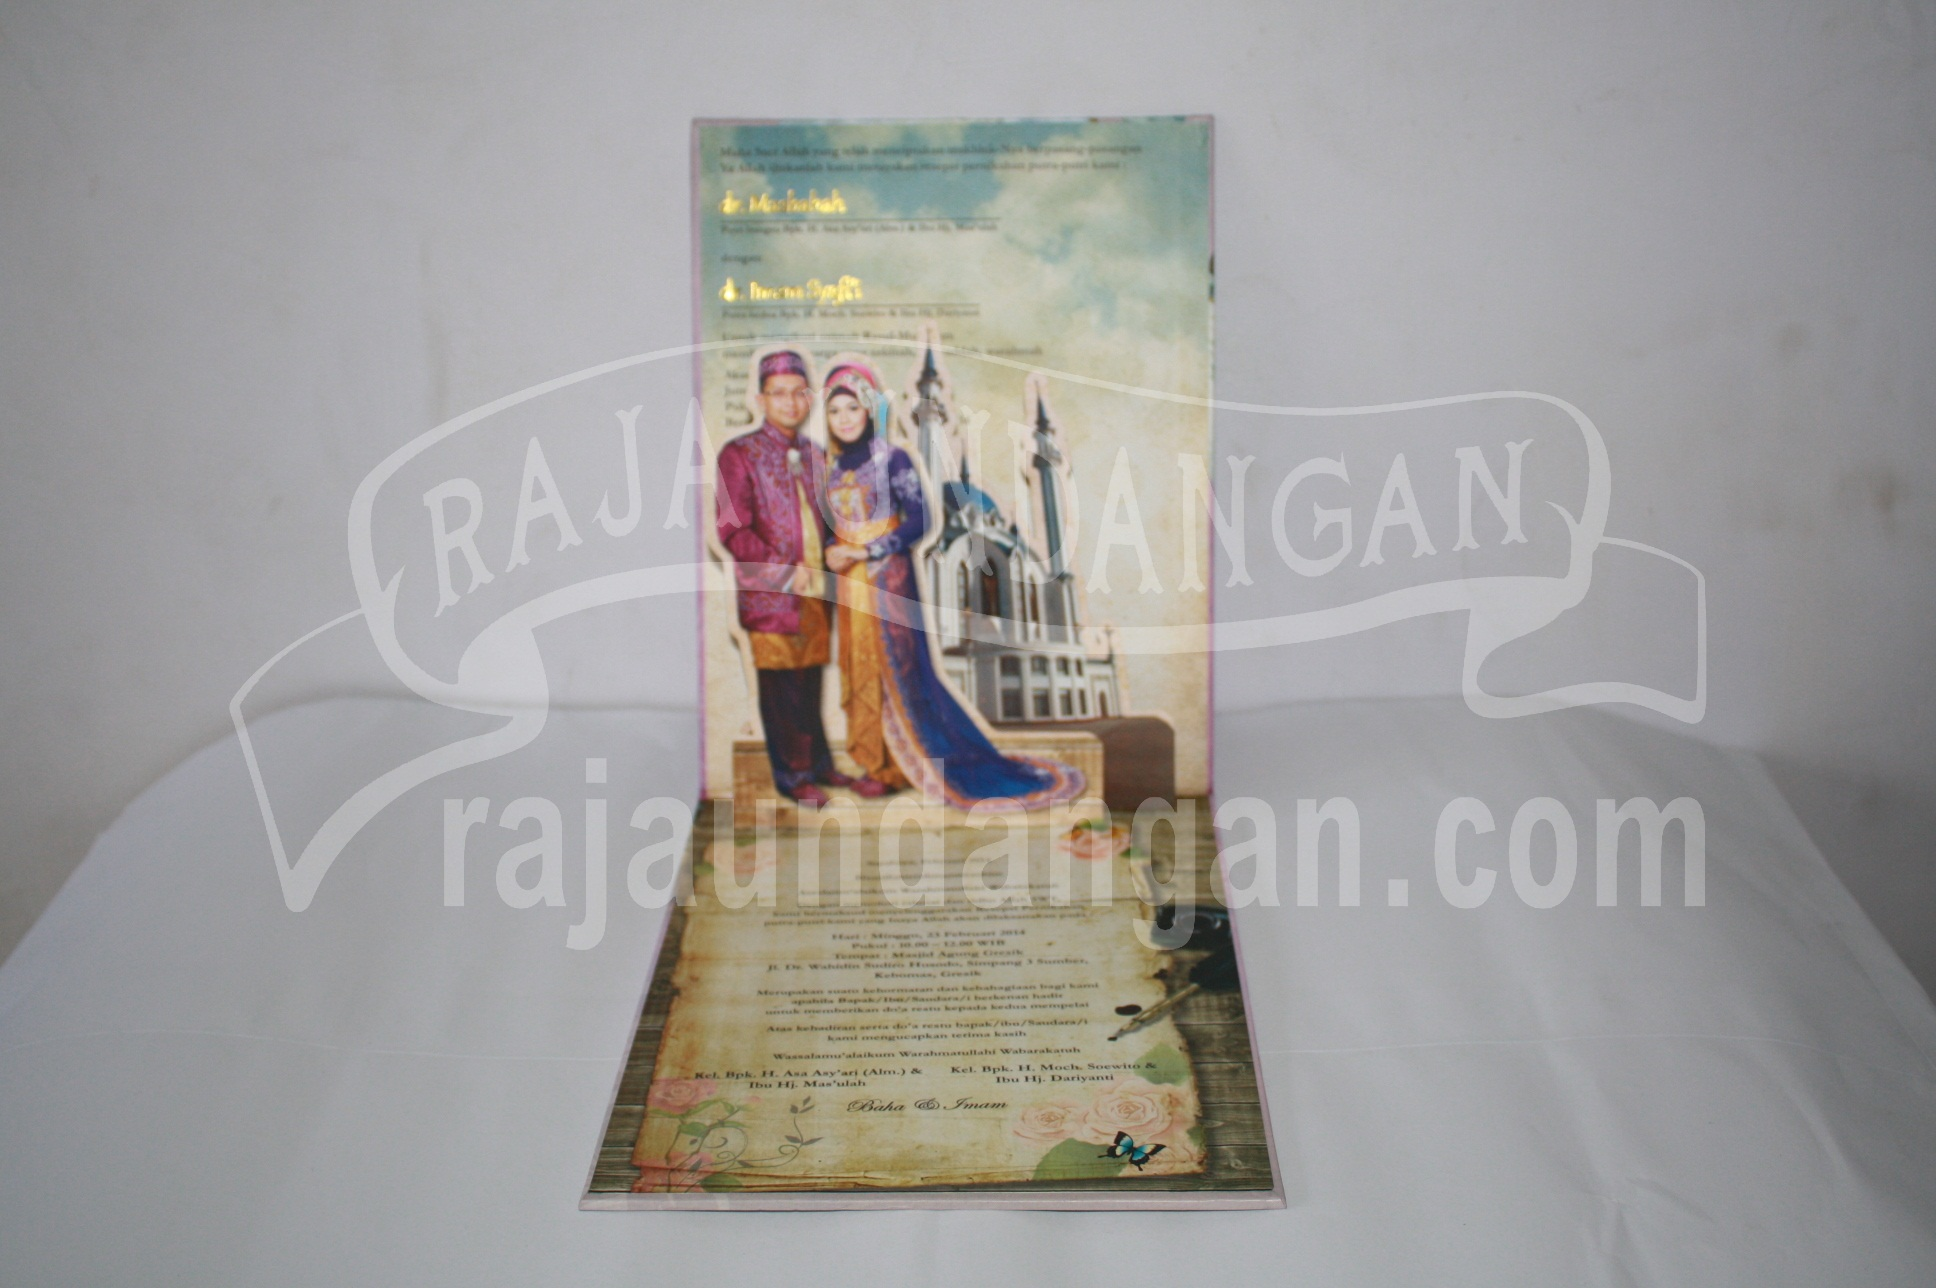 Undangan Pernikahan Hardcover Pop Up 3D Baha dan Imam EDC 49 31 - Percetakan Wedding Invitations Unik dan Simple di Dukuh Sutorejo